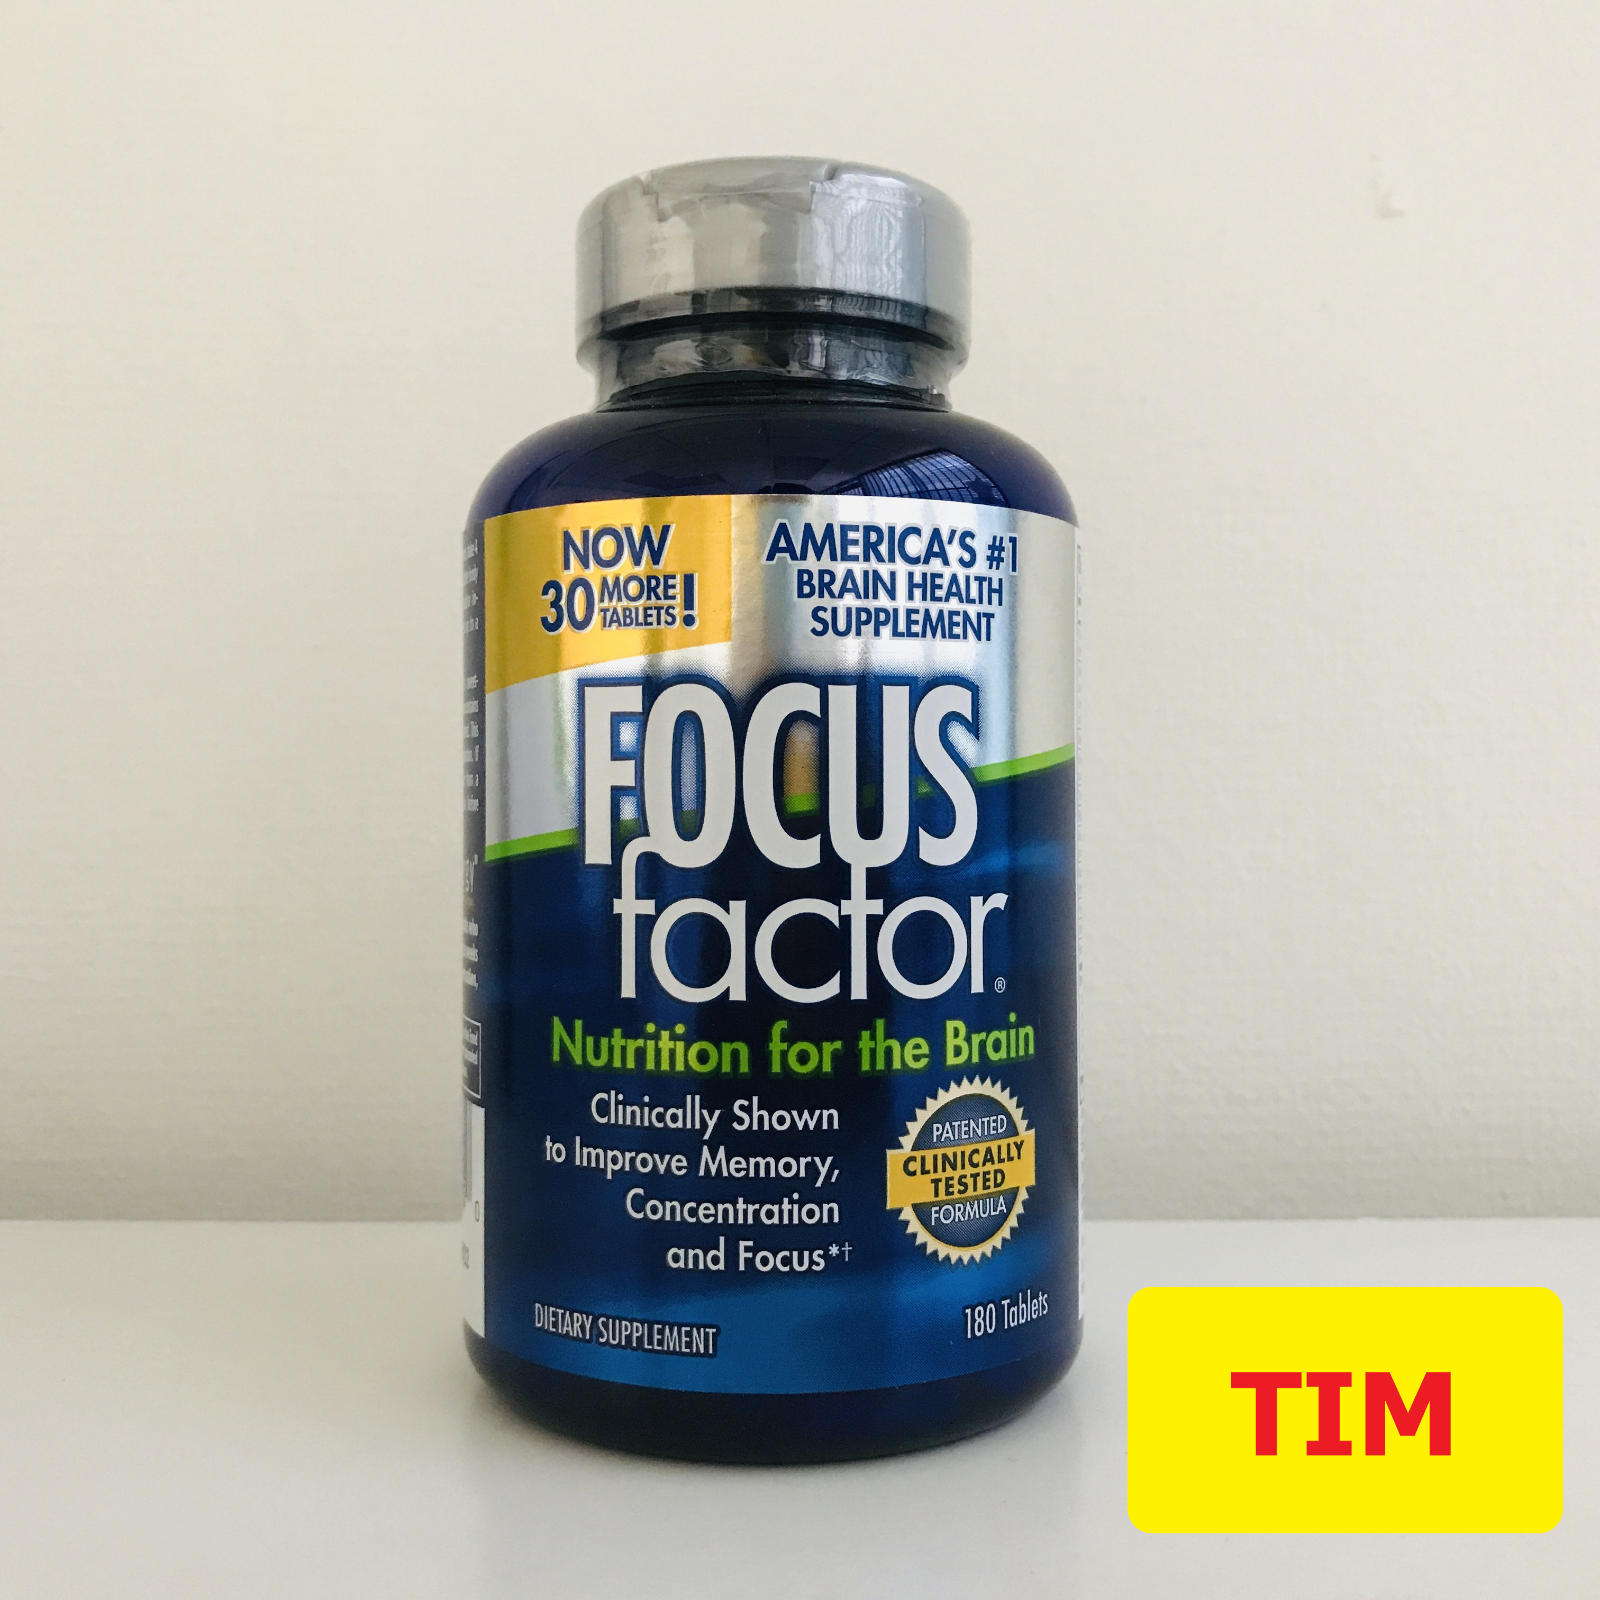 (JUST ARRIVE) Focus Factor Brain Supplement - 180 Tablets (NEW Inventory!!!)